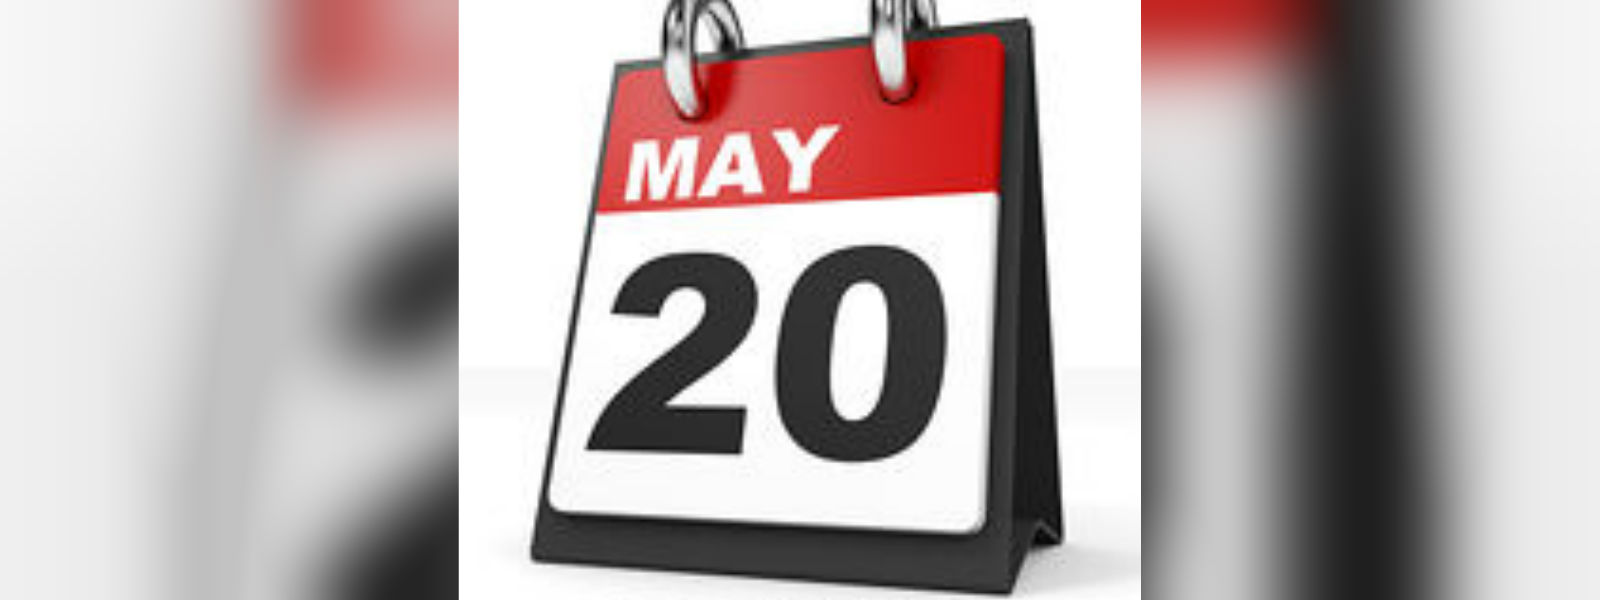 May 20th declared a Public Holiday